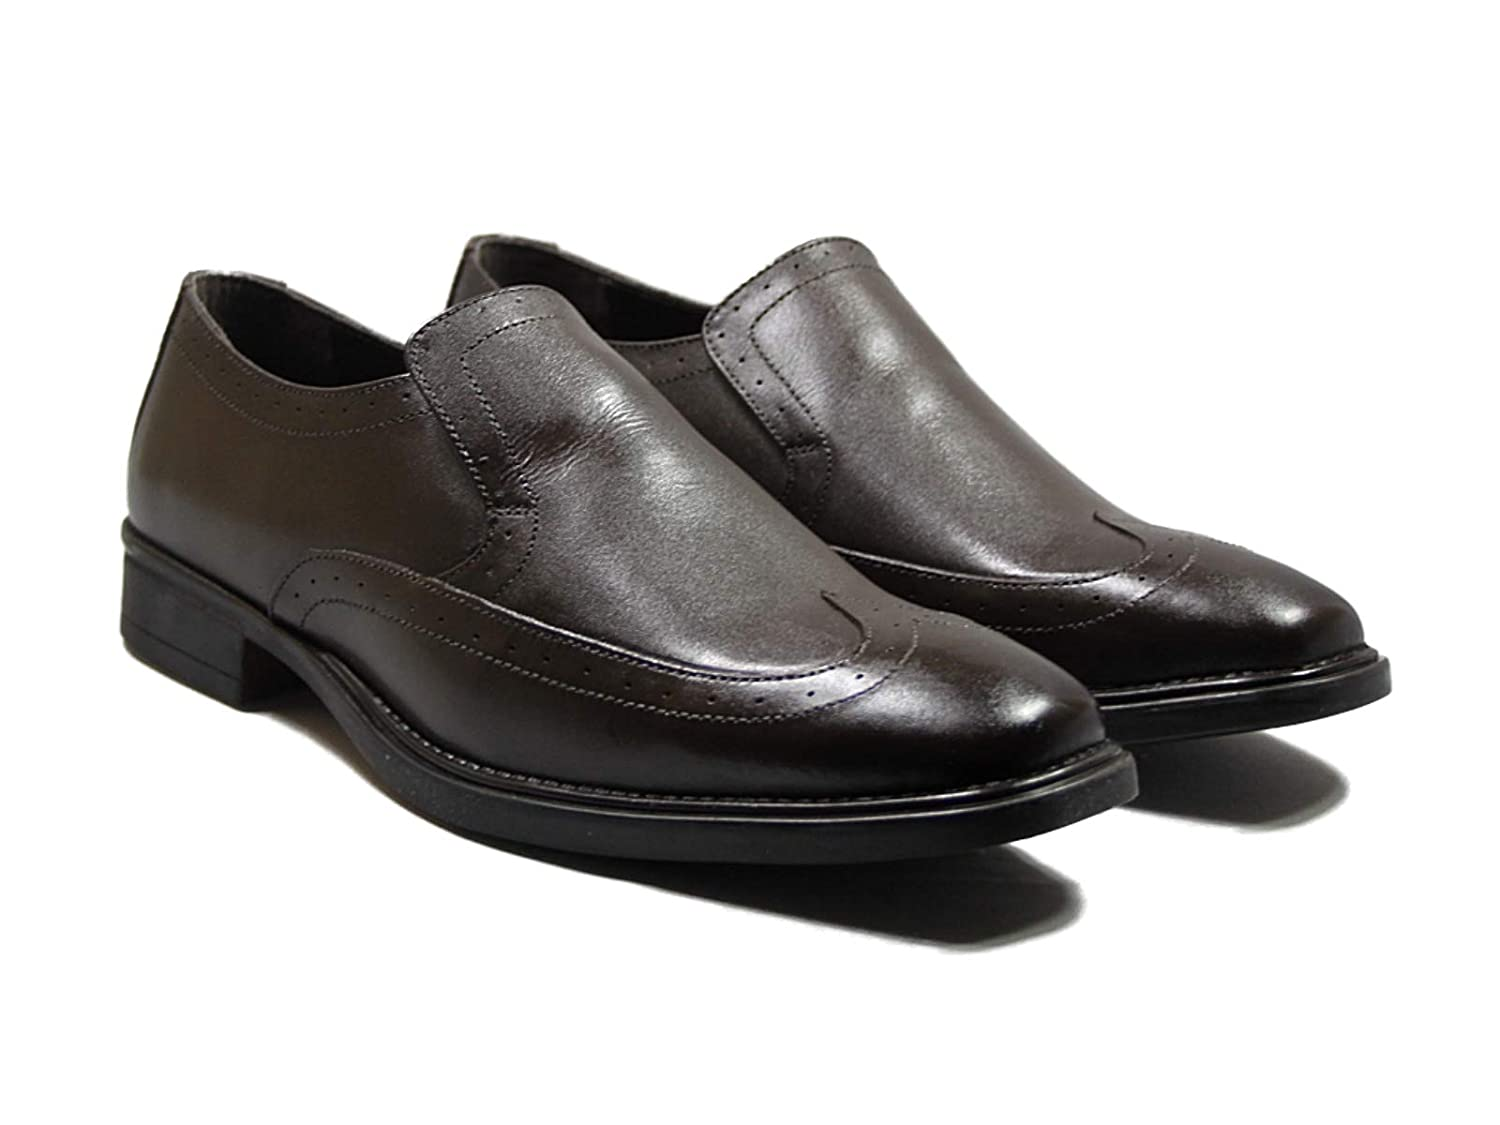 41f10e8918f Lucini Men's Leather Slip on Shoes in Black Tan Brown Size 6-12